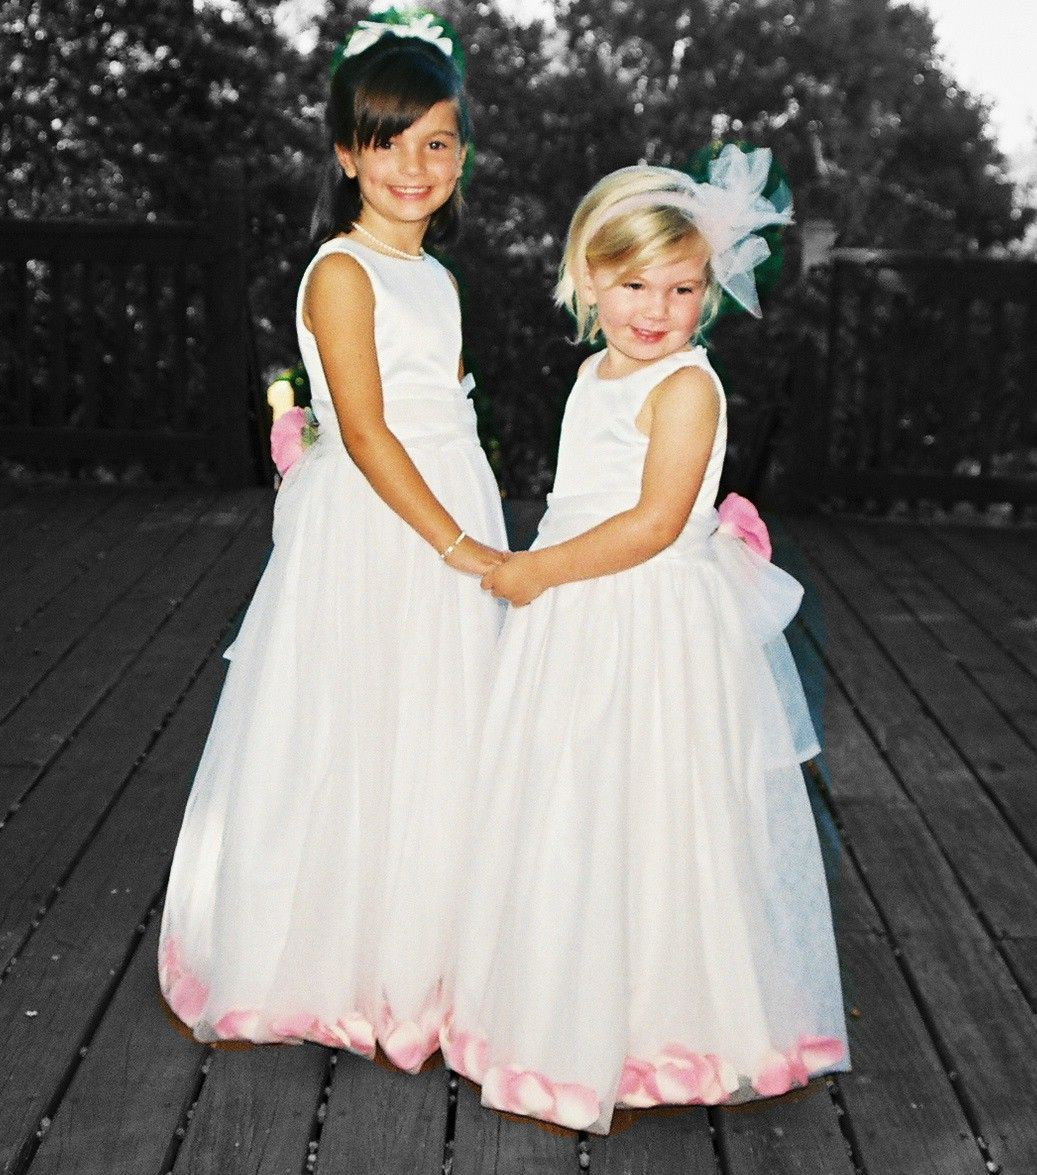 The Flower Girls Dresses Again The Flowers Will Be All Camoflauge